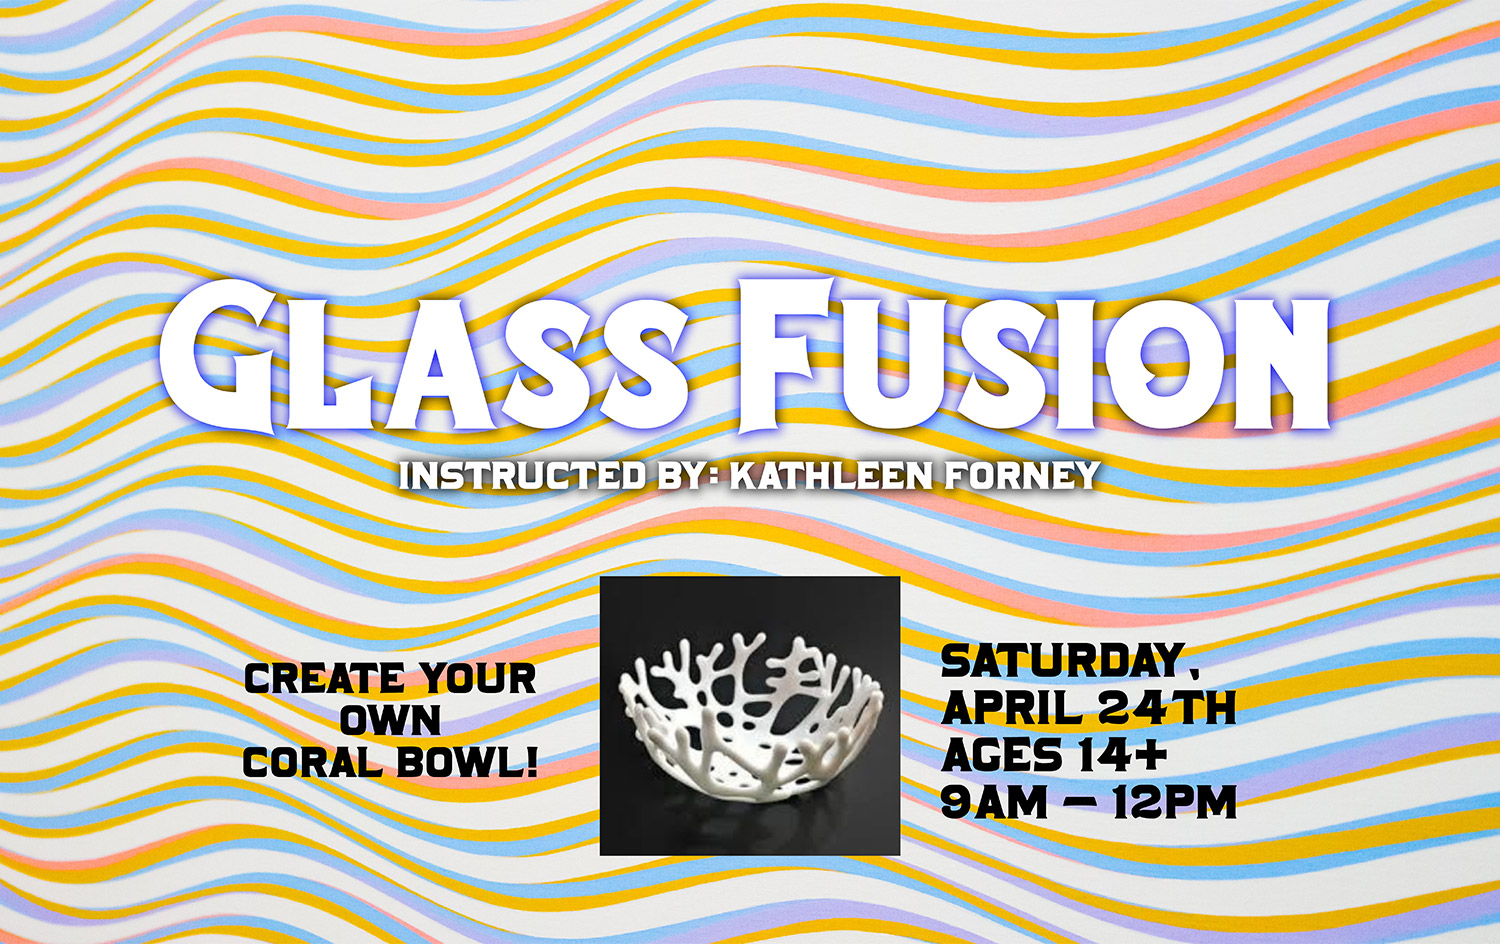 Glass Fusion - Create Your Own Coral Bowl